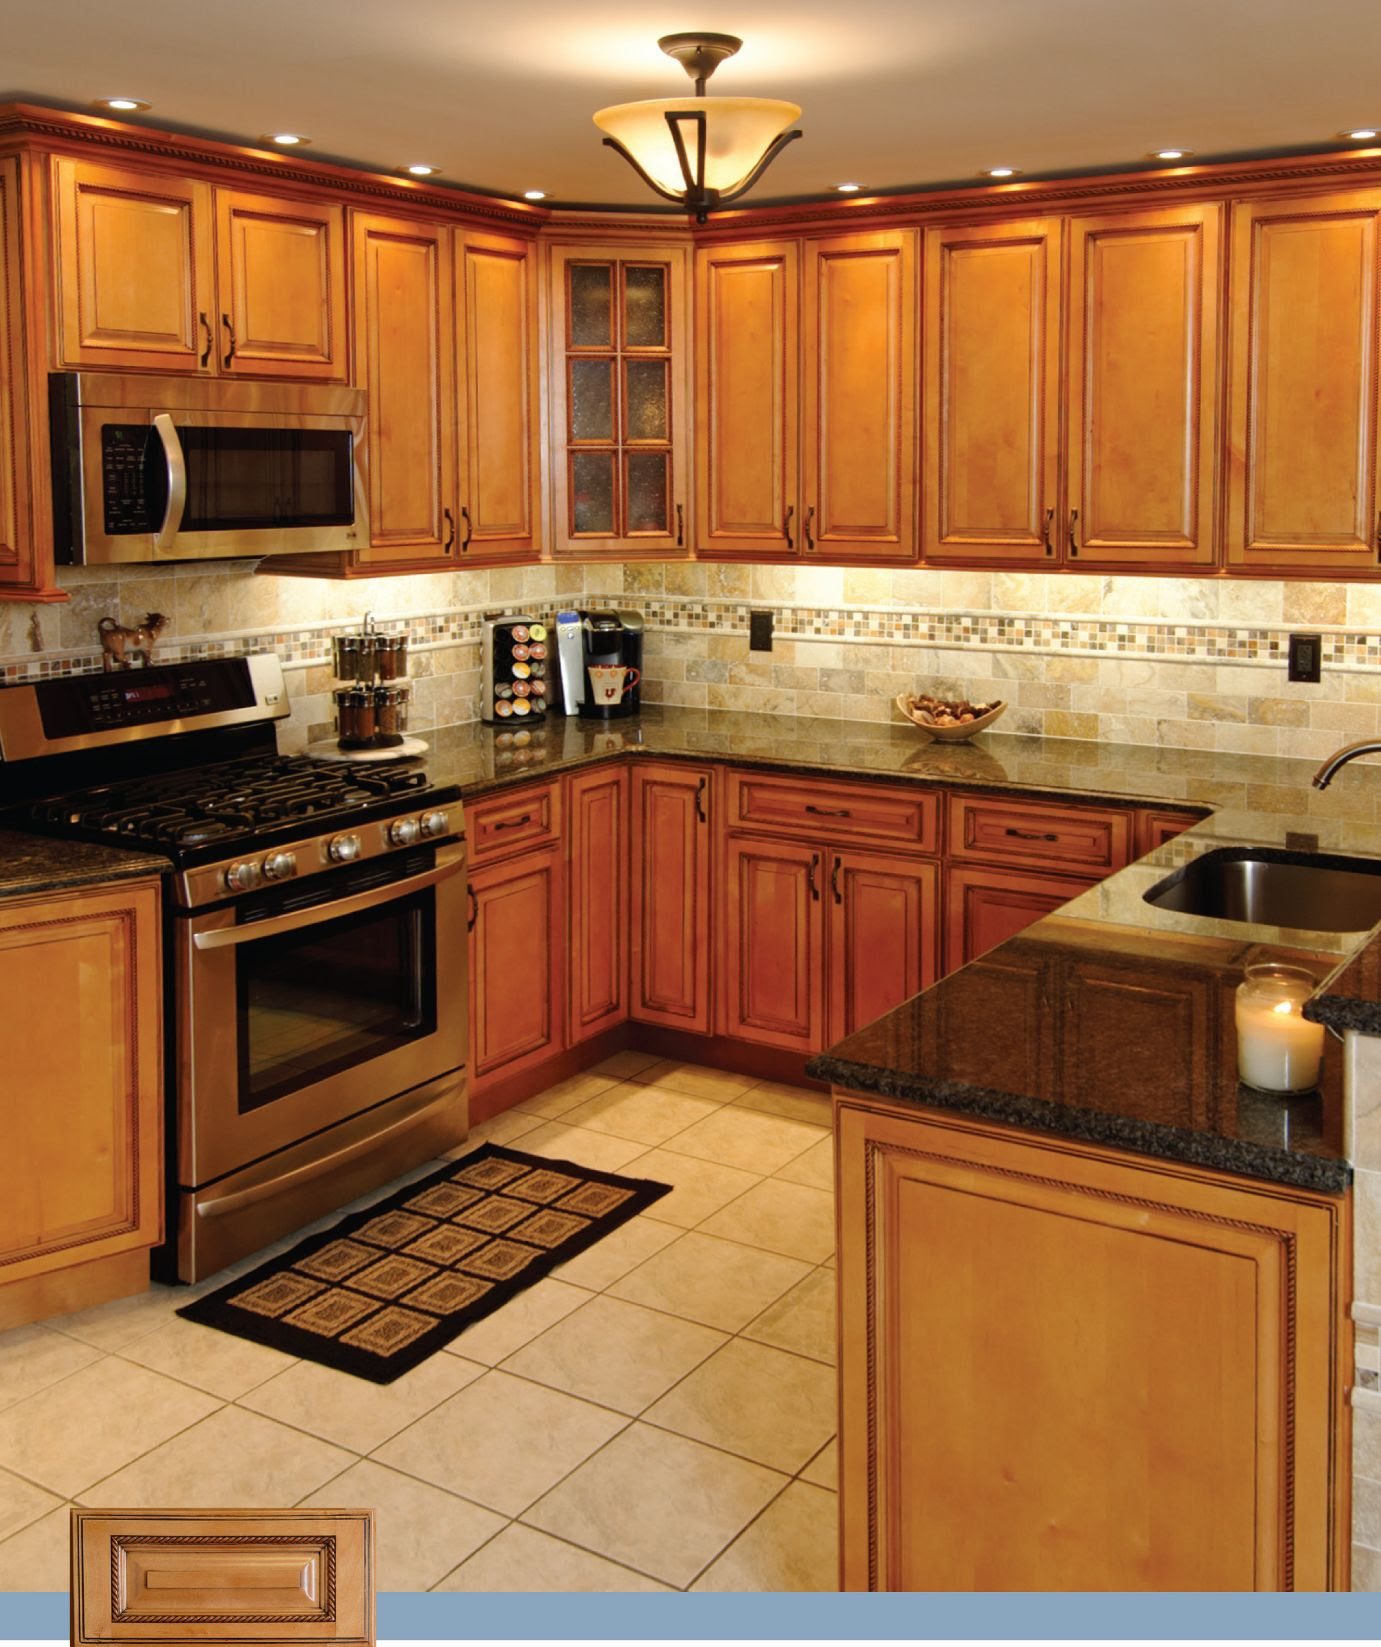 Images Of Maple Cabinet Kitchens | Home Design Ideas Essentials